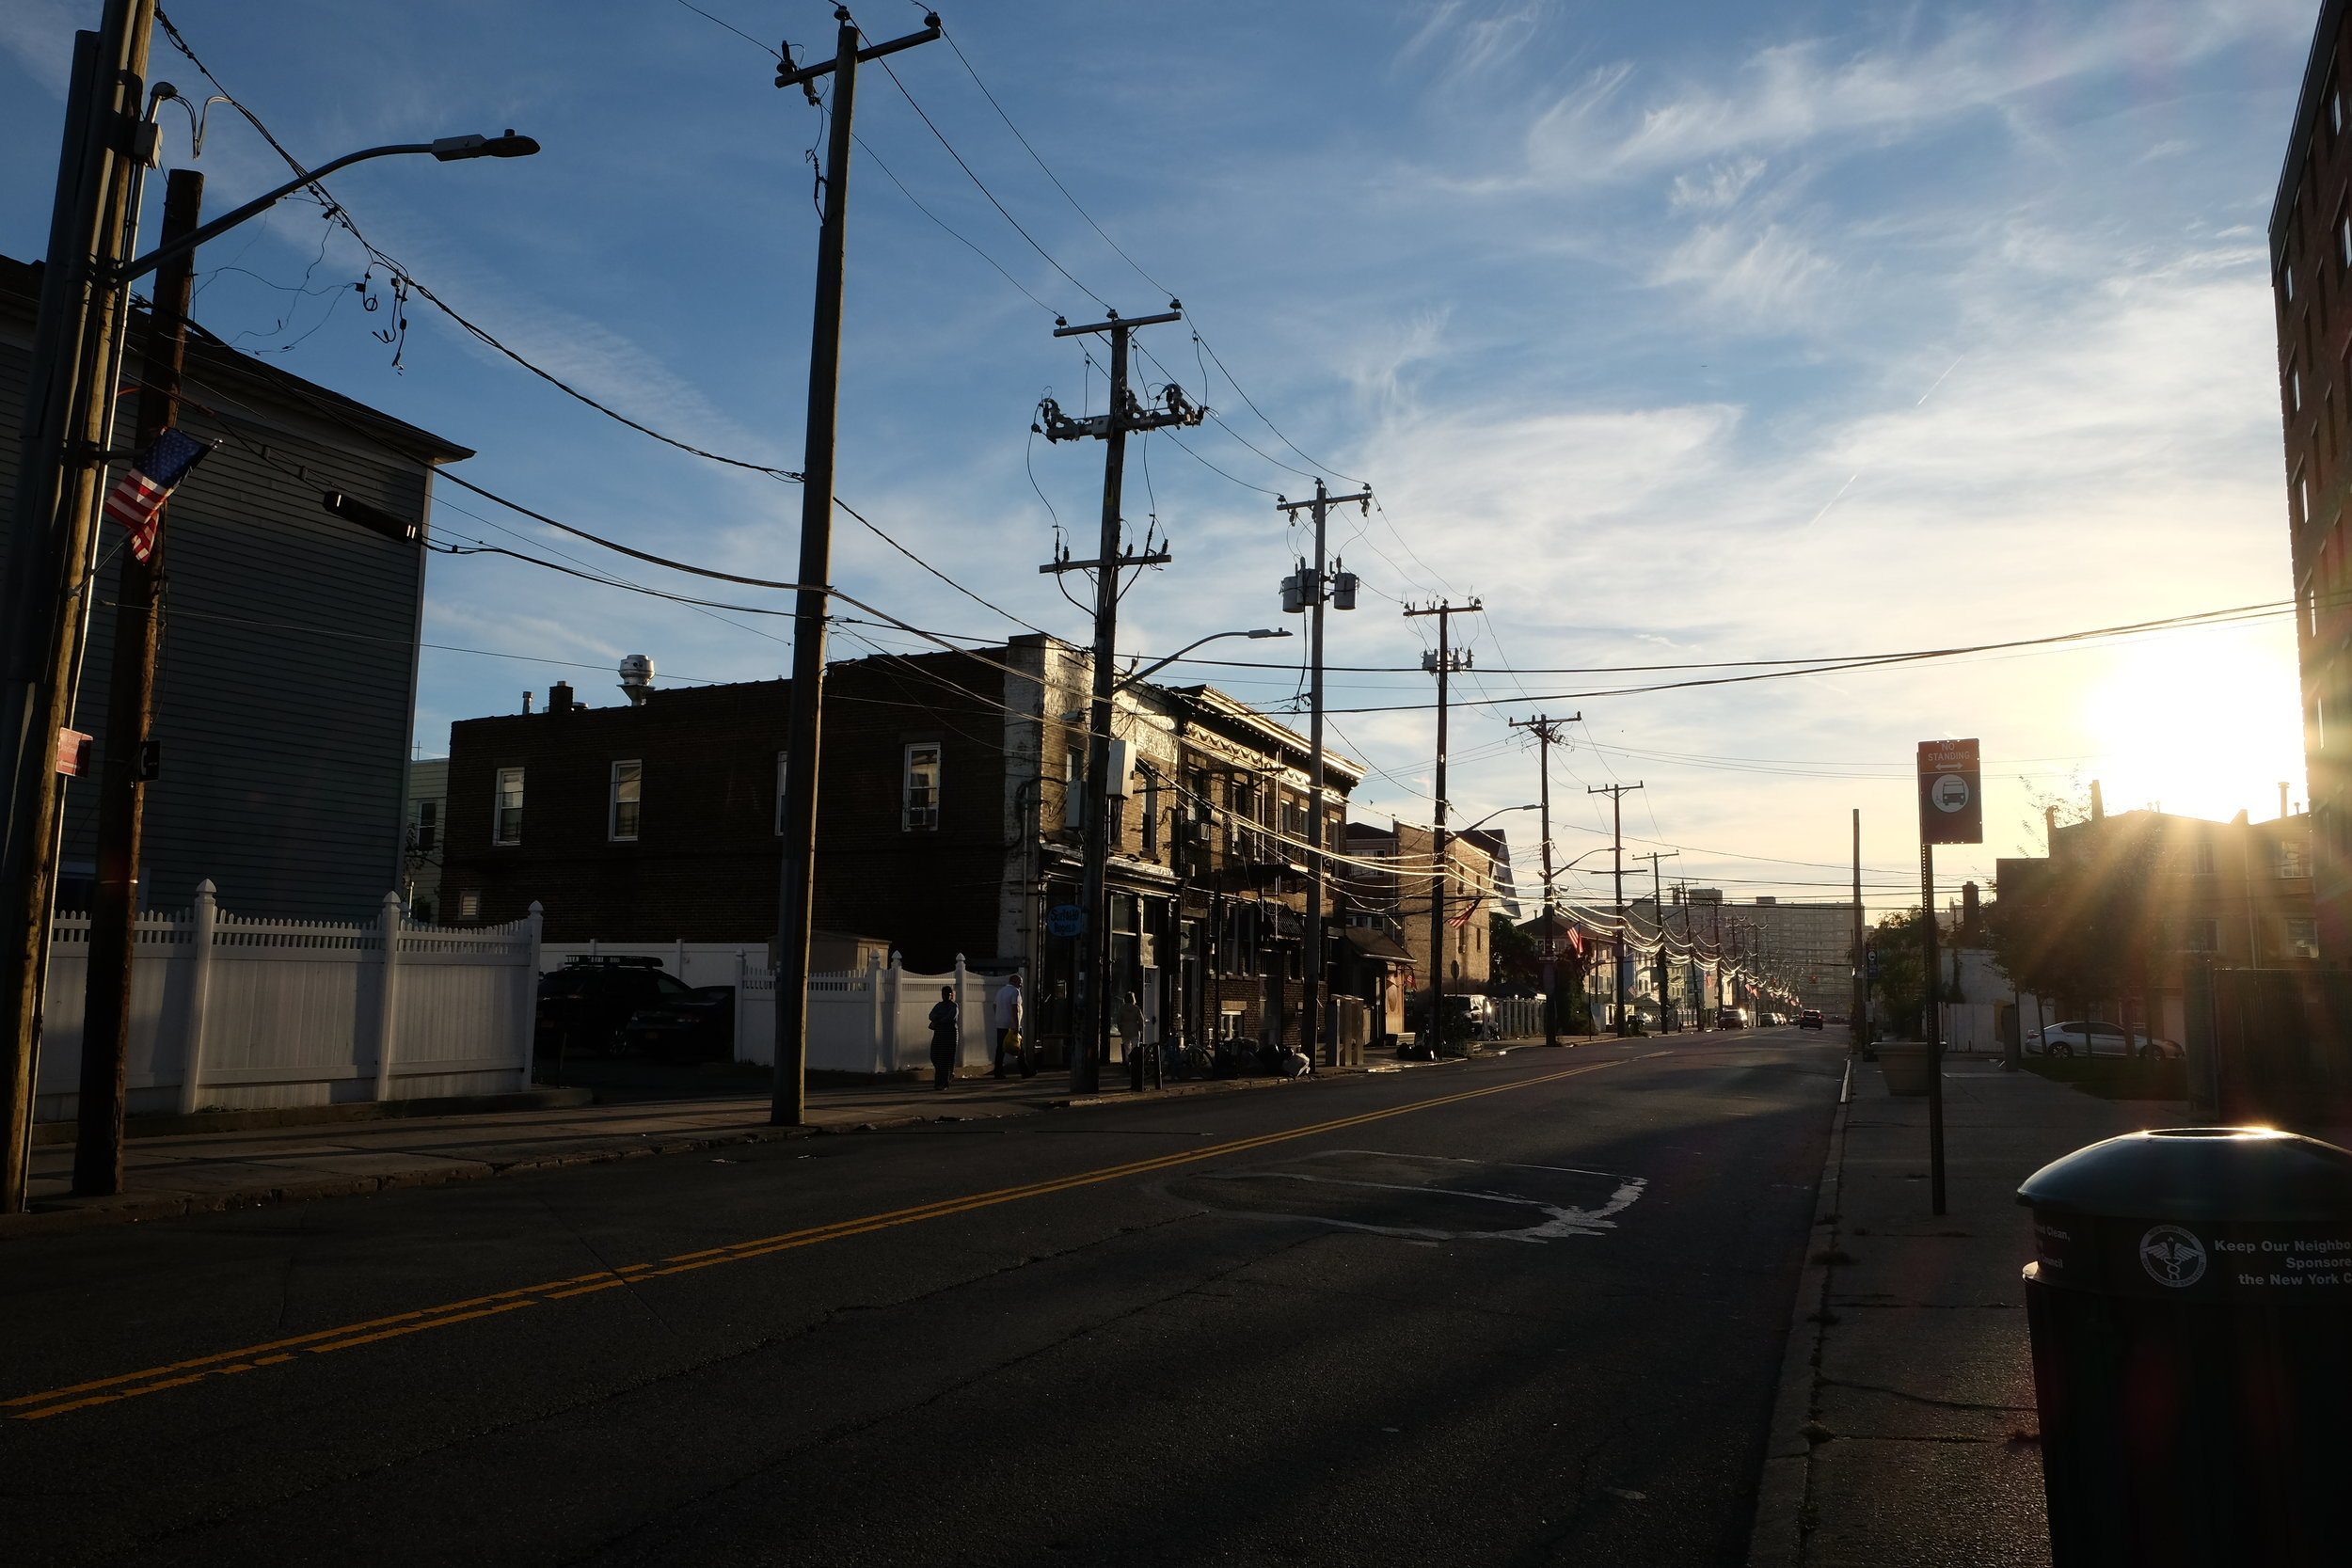 Rockaways - Main Street